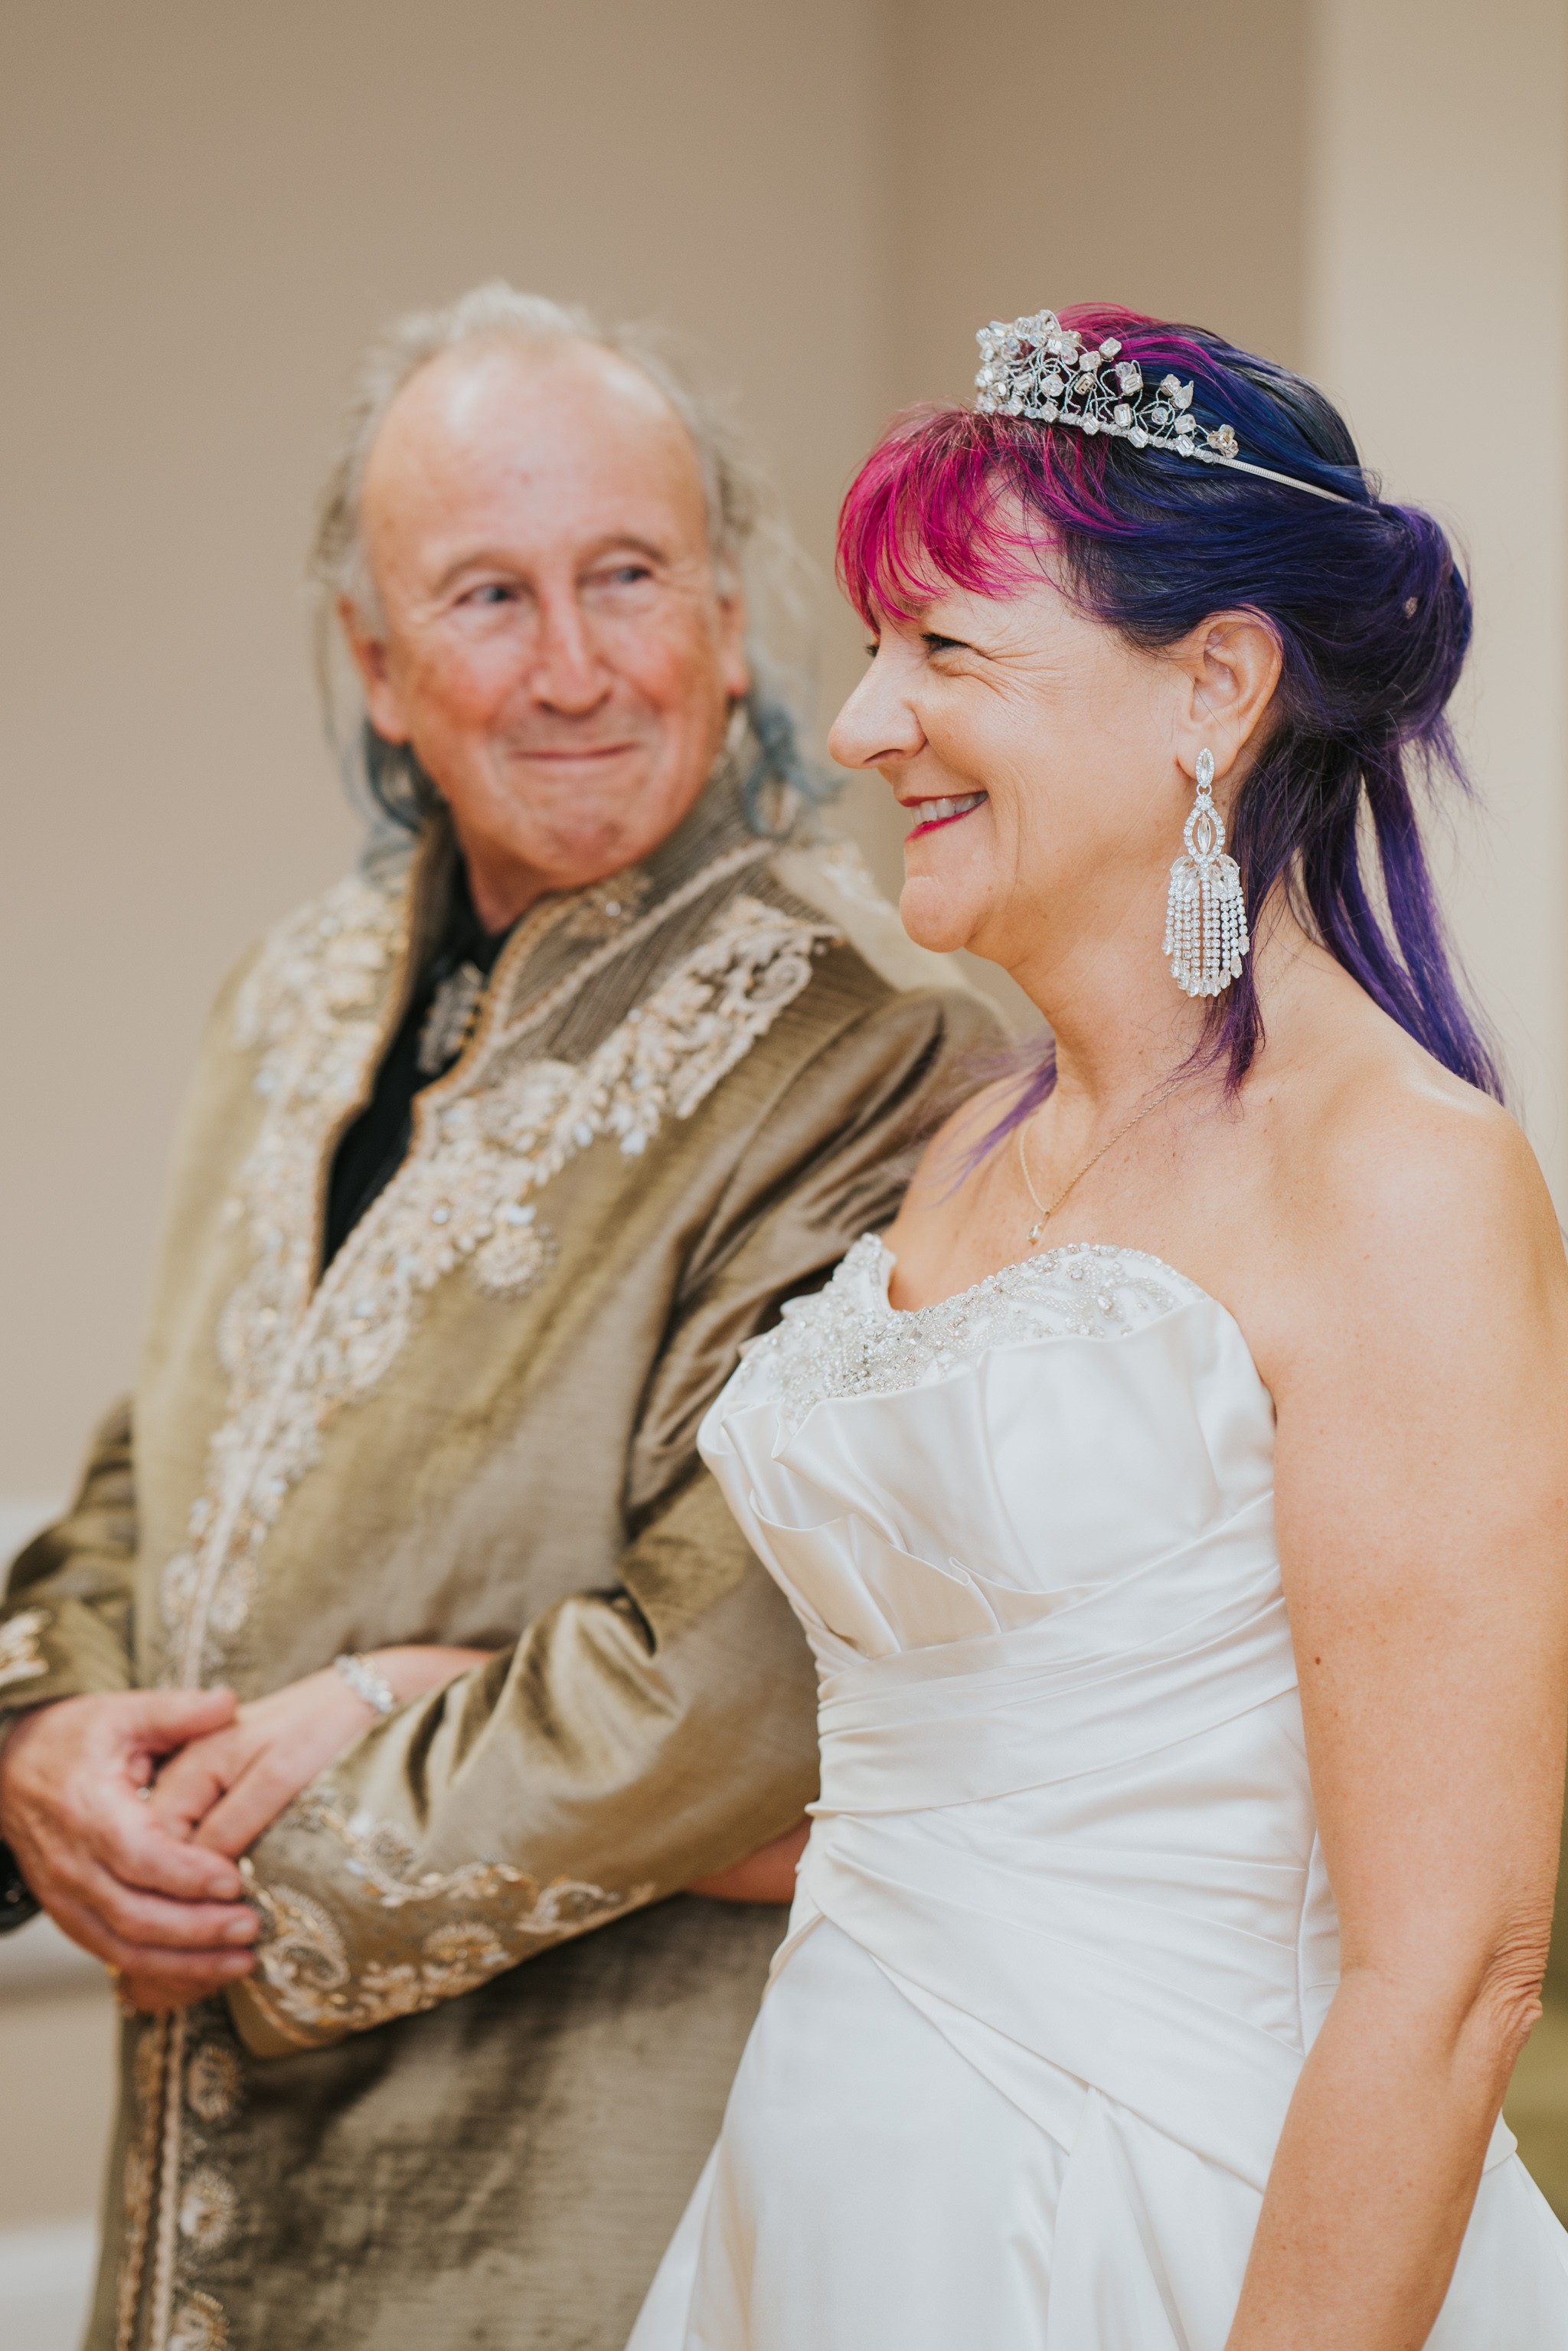 david-kim-elopement-colchester-essex-alternative-wedding-photographer-grace-elizabeth-essex-suffolk-norfolk-devon (9 of 38).jpg